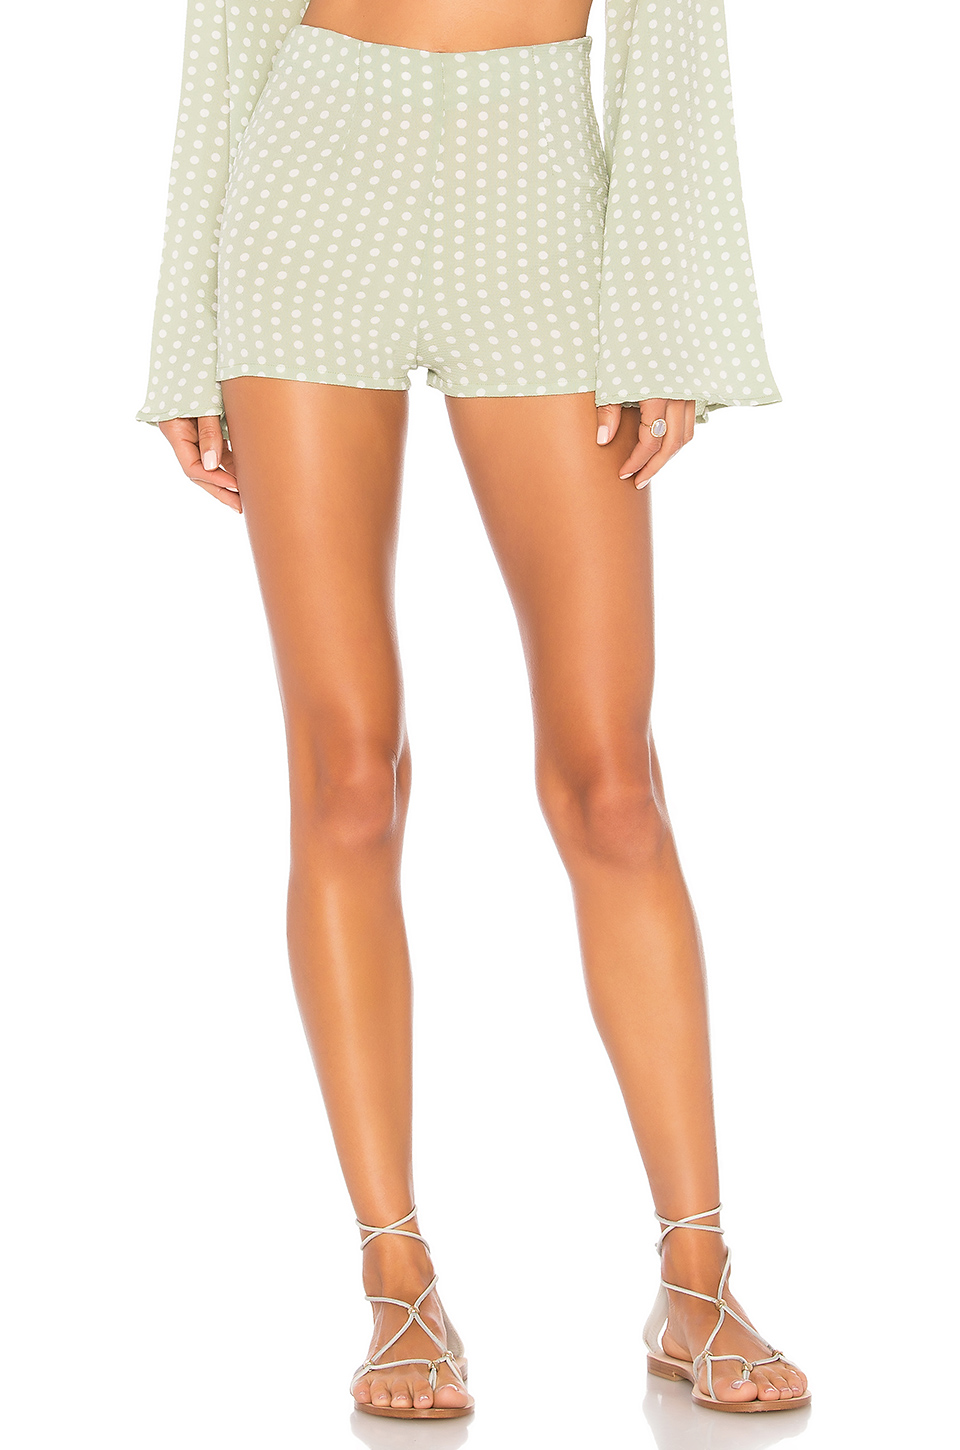 ELLEJAY Kylie Shorts in Polka Dot